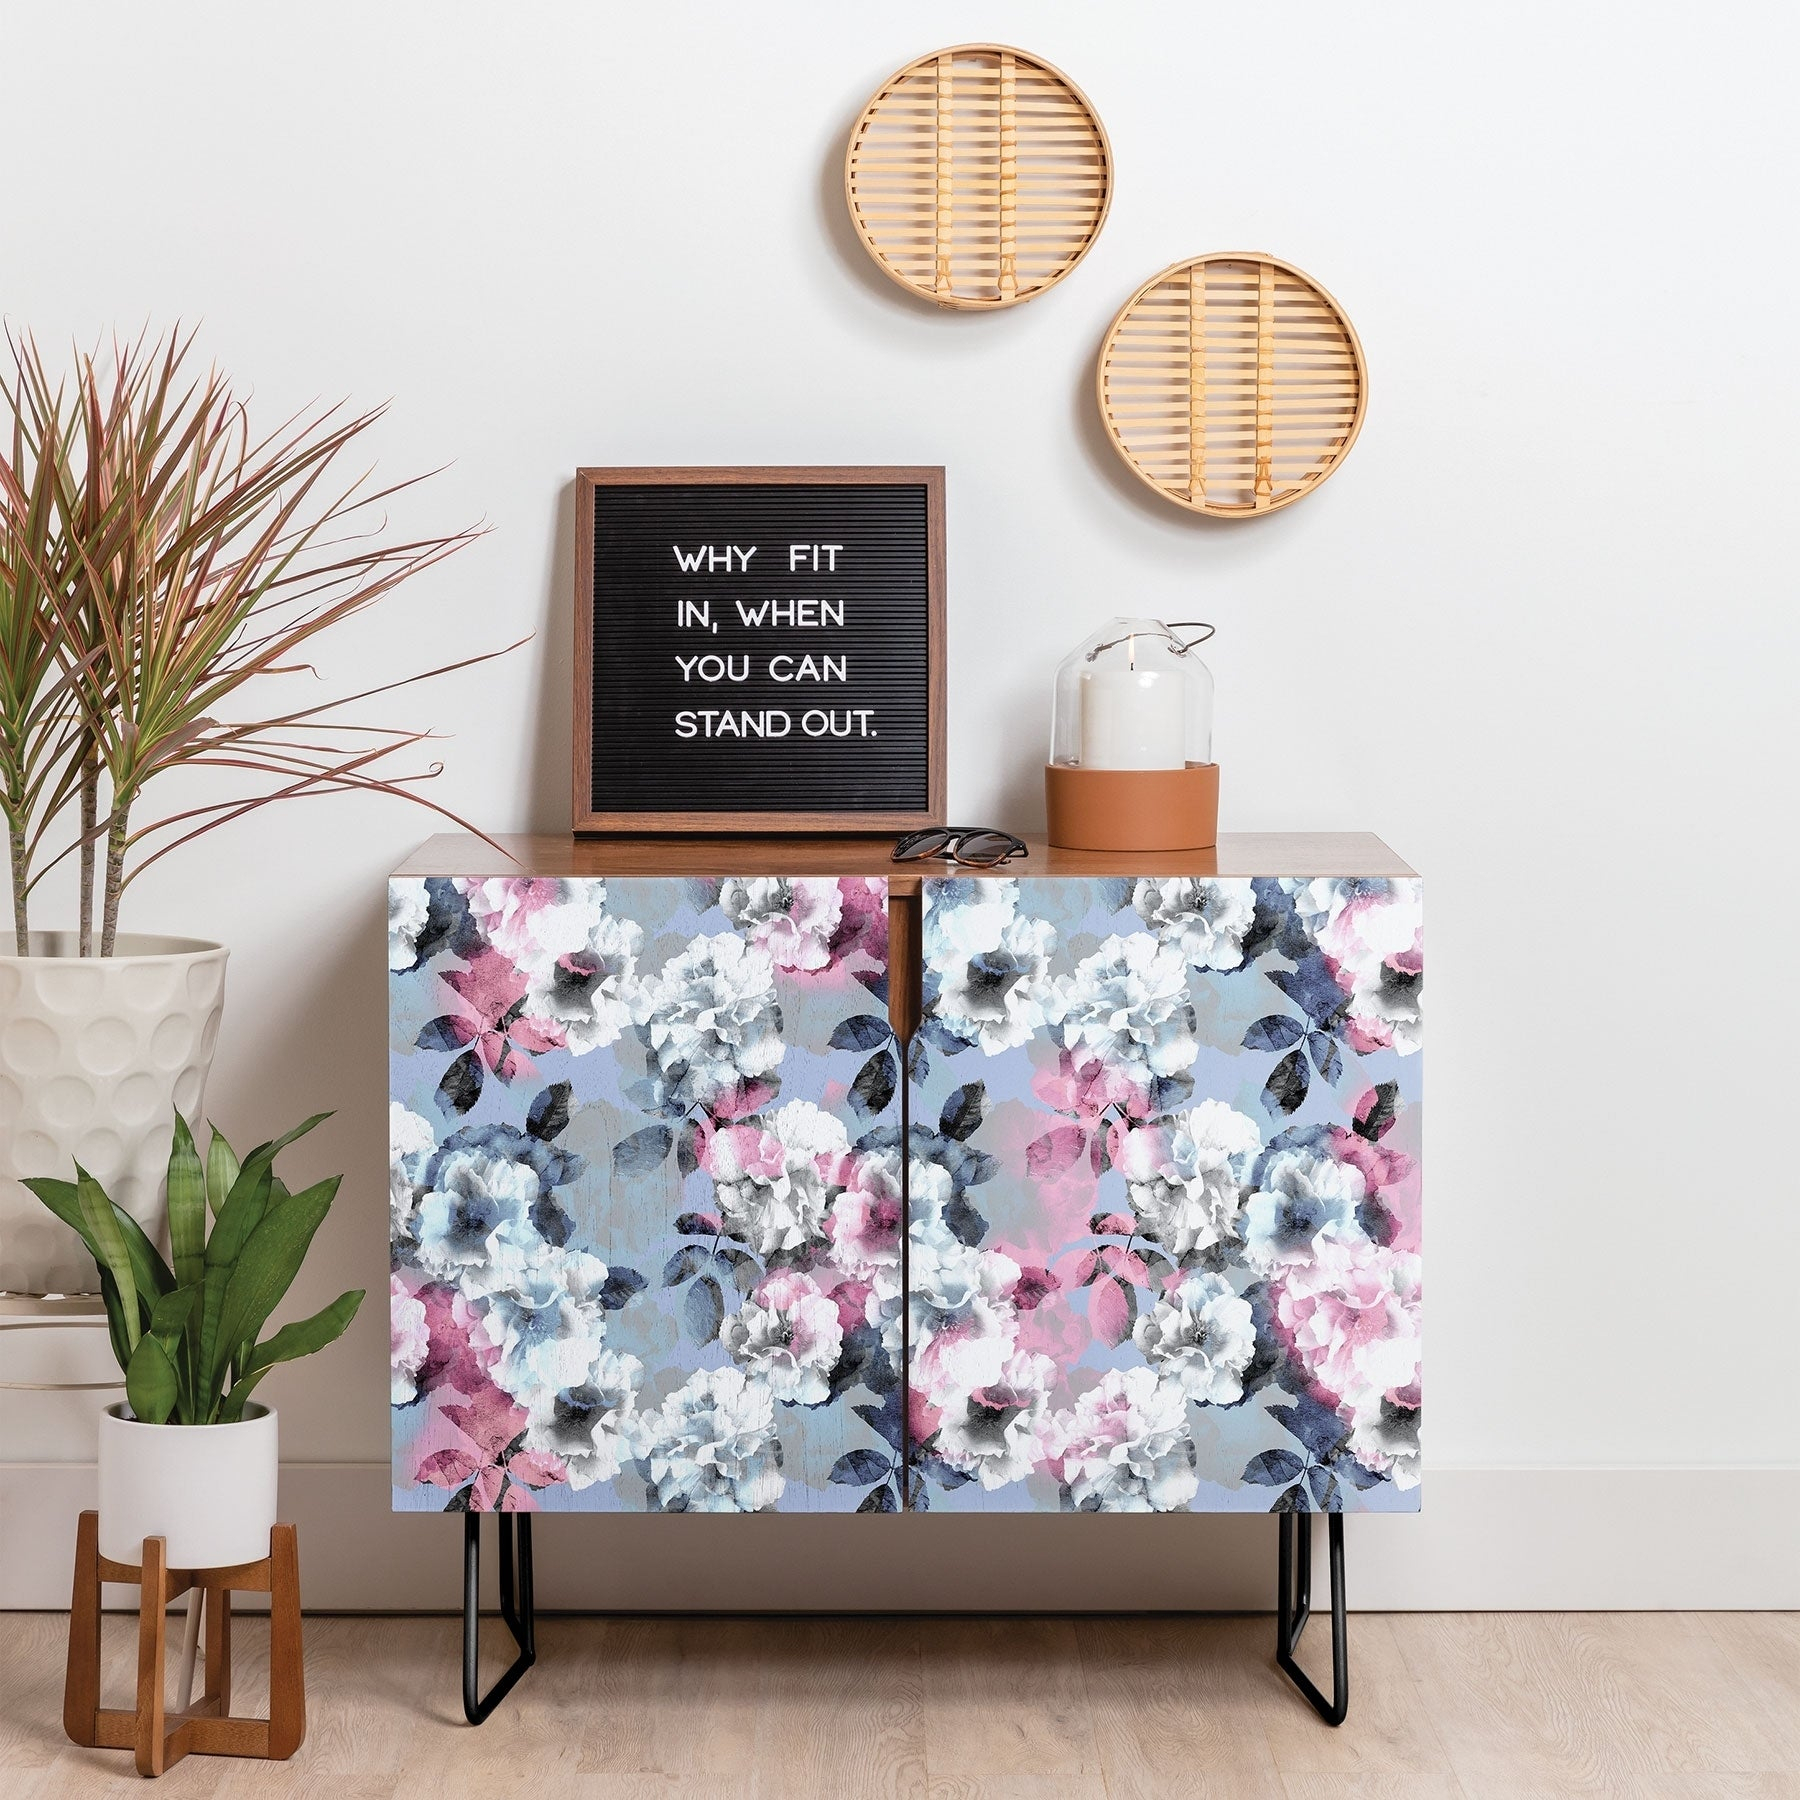 Deny Designs Vintage Floral Theme Credenza (Birch Or Walnut, 2 Leg Options) With Regard To Lovely Floral Credenzas (Photo 2 of 30)